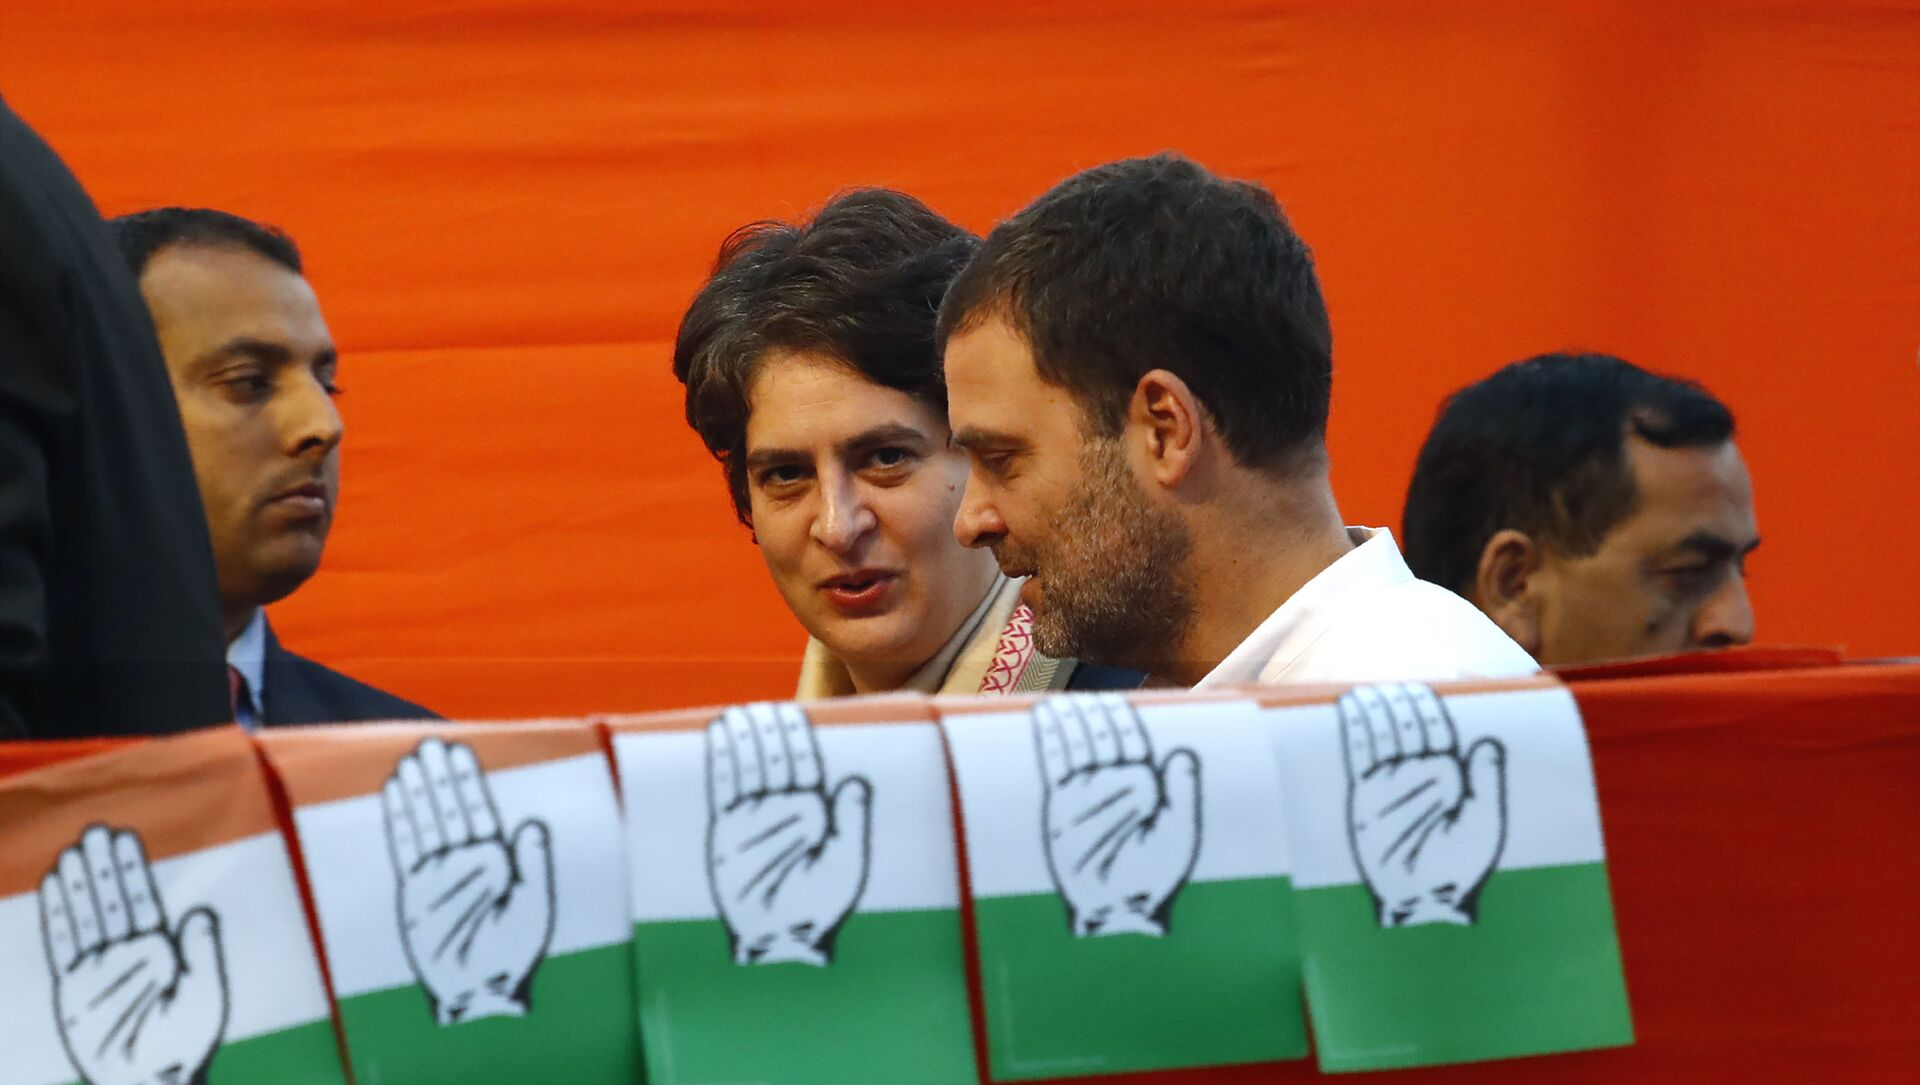 Congress party leader Rahul Gandhi, center, talks to his sister and party General Secretary Priyanka Vadra, as they arrive for an election campaign rally for the upcoming Delhi elections, in New Delhi, India, Tuesday, Feb. 4, 2020 - Sputnik International, 1920, 26.07.2021